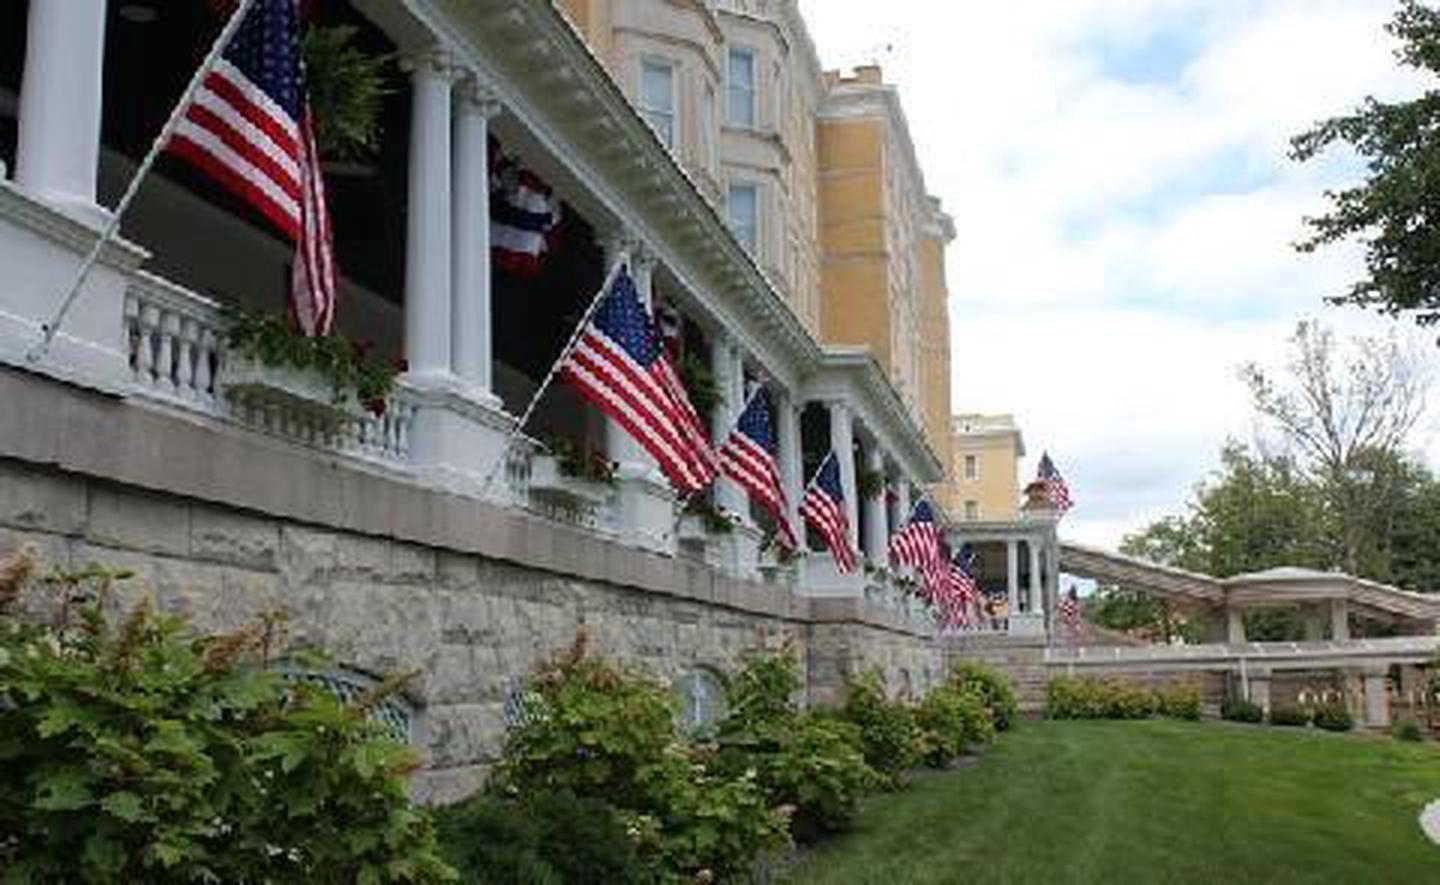 An American TraditionWith Senator Taggert at the helm, the French Lick Springs Hotel became known as the unofficial home of the Democratic party.  In fact, in 1931 FDR kicked off his run for President at the hotel.